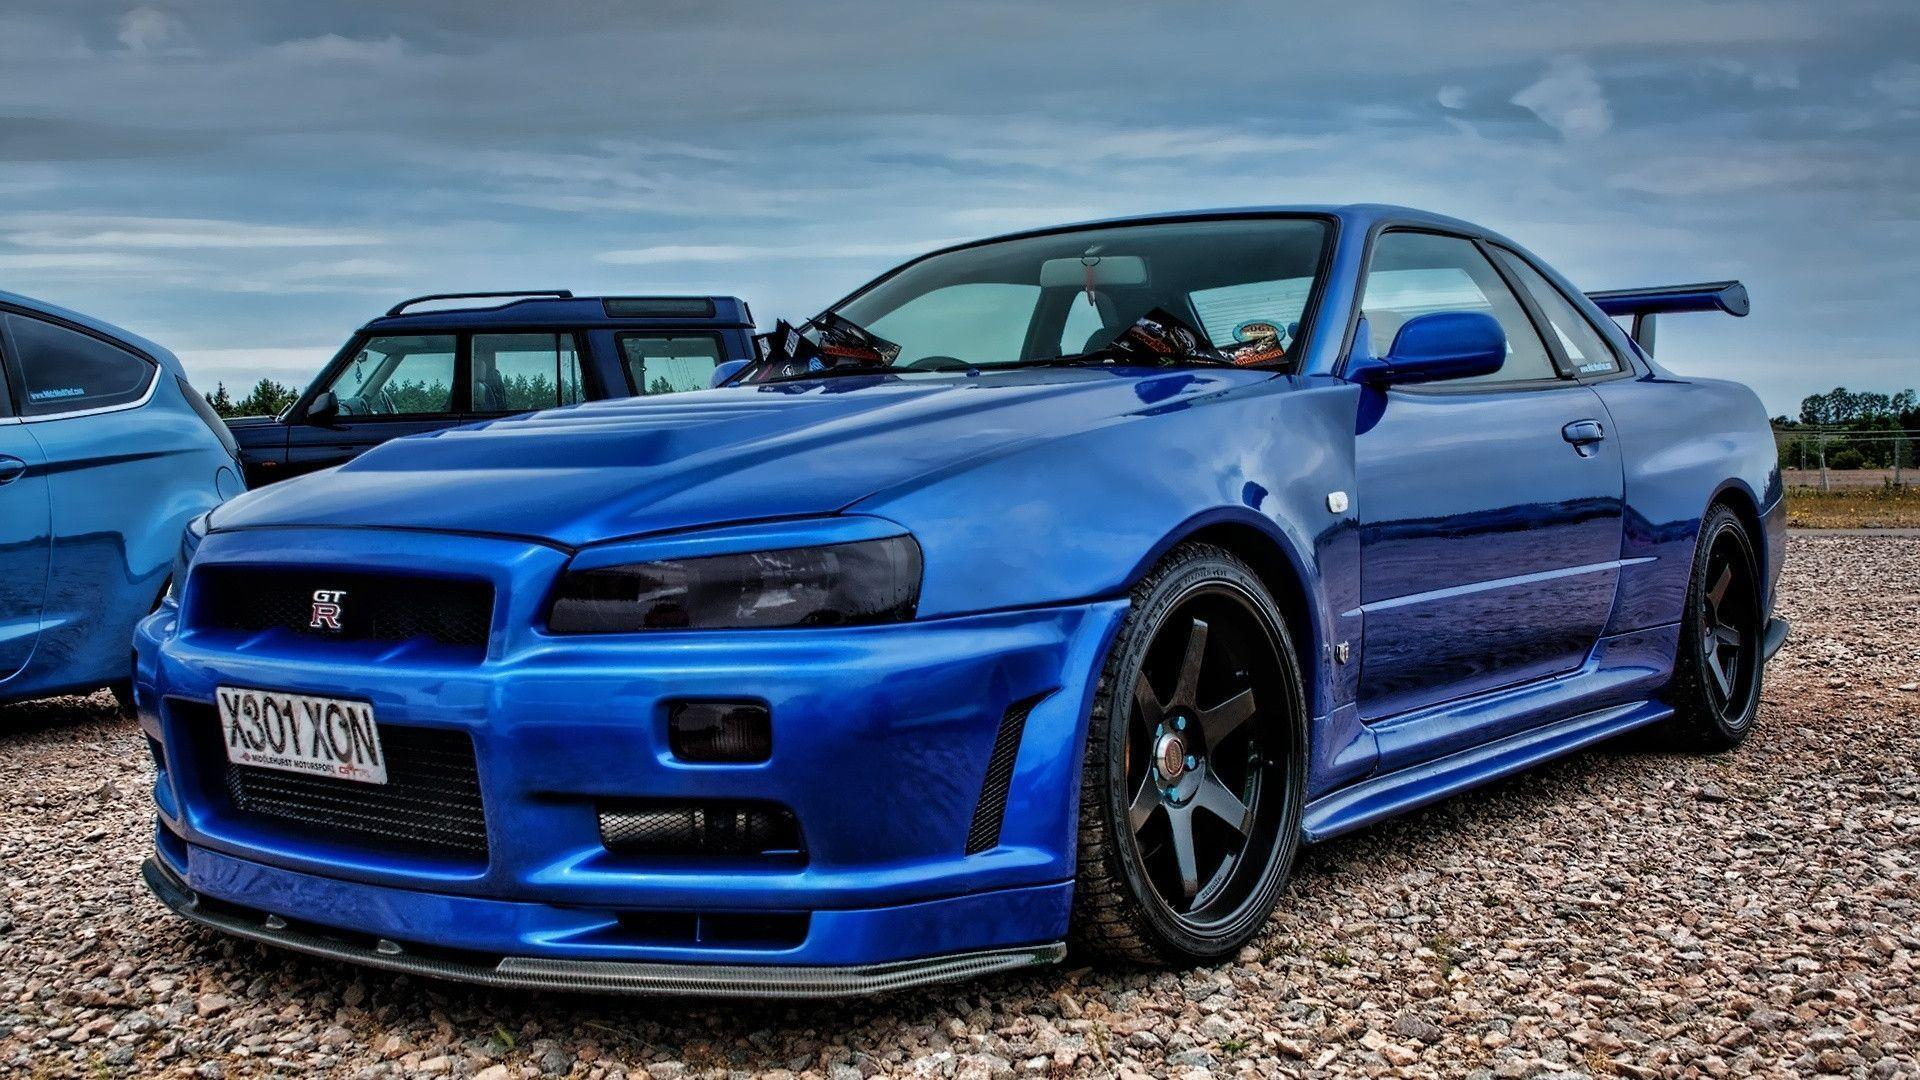 R34 GTR Wallpapers - Wallpaper Cave